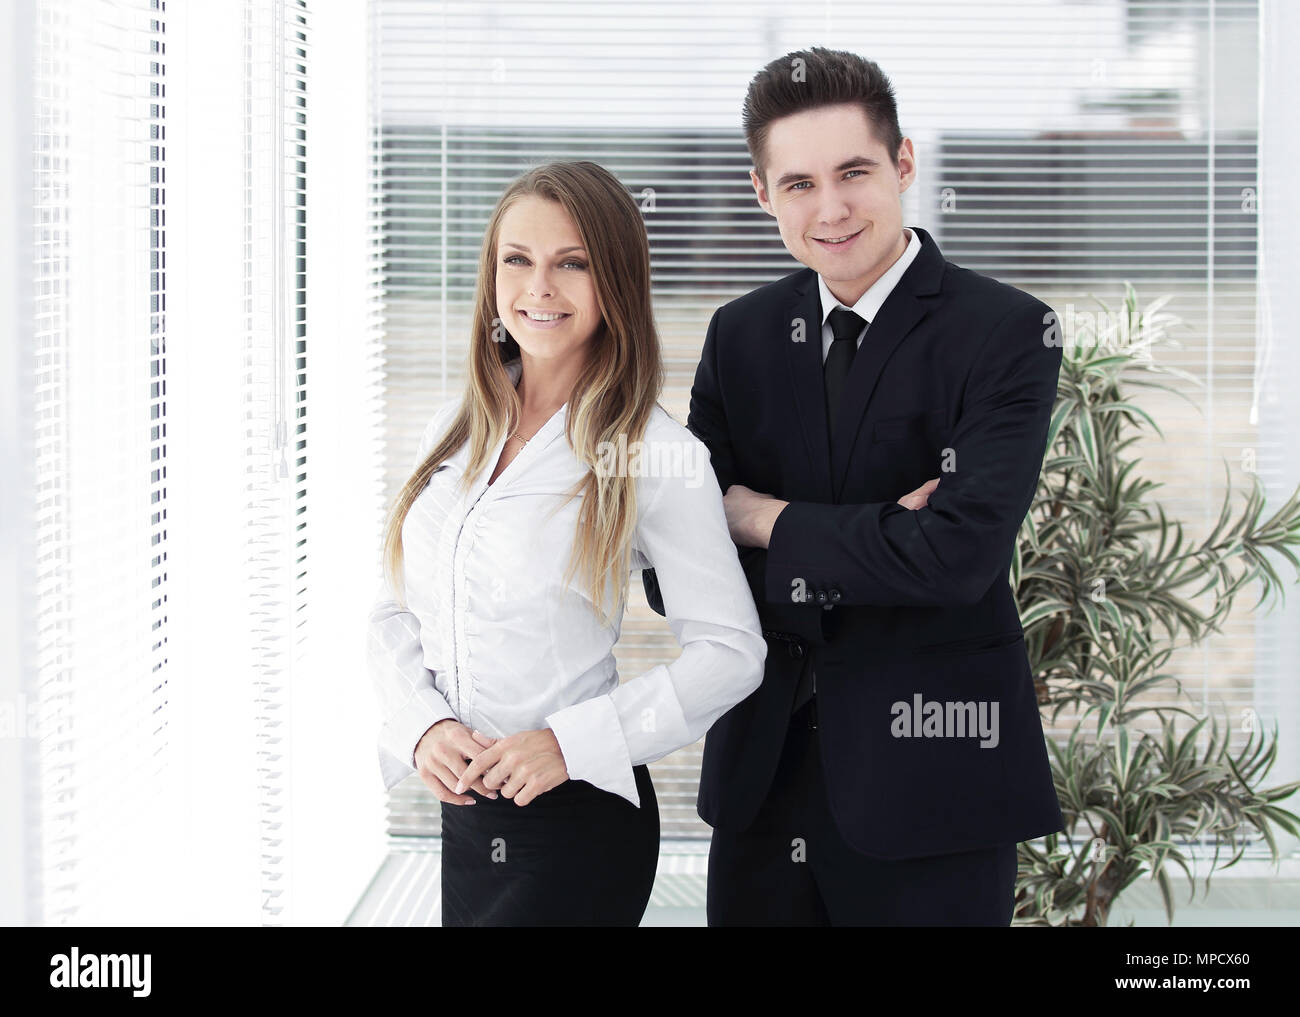 business couple standing in a modern office - Stock Image